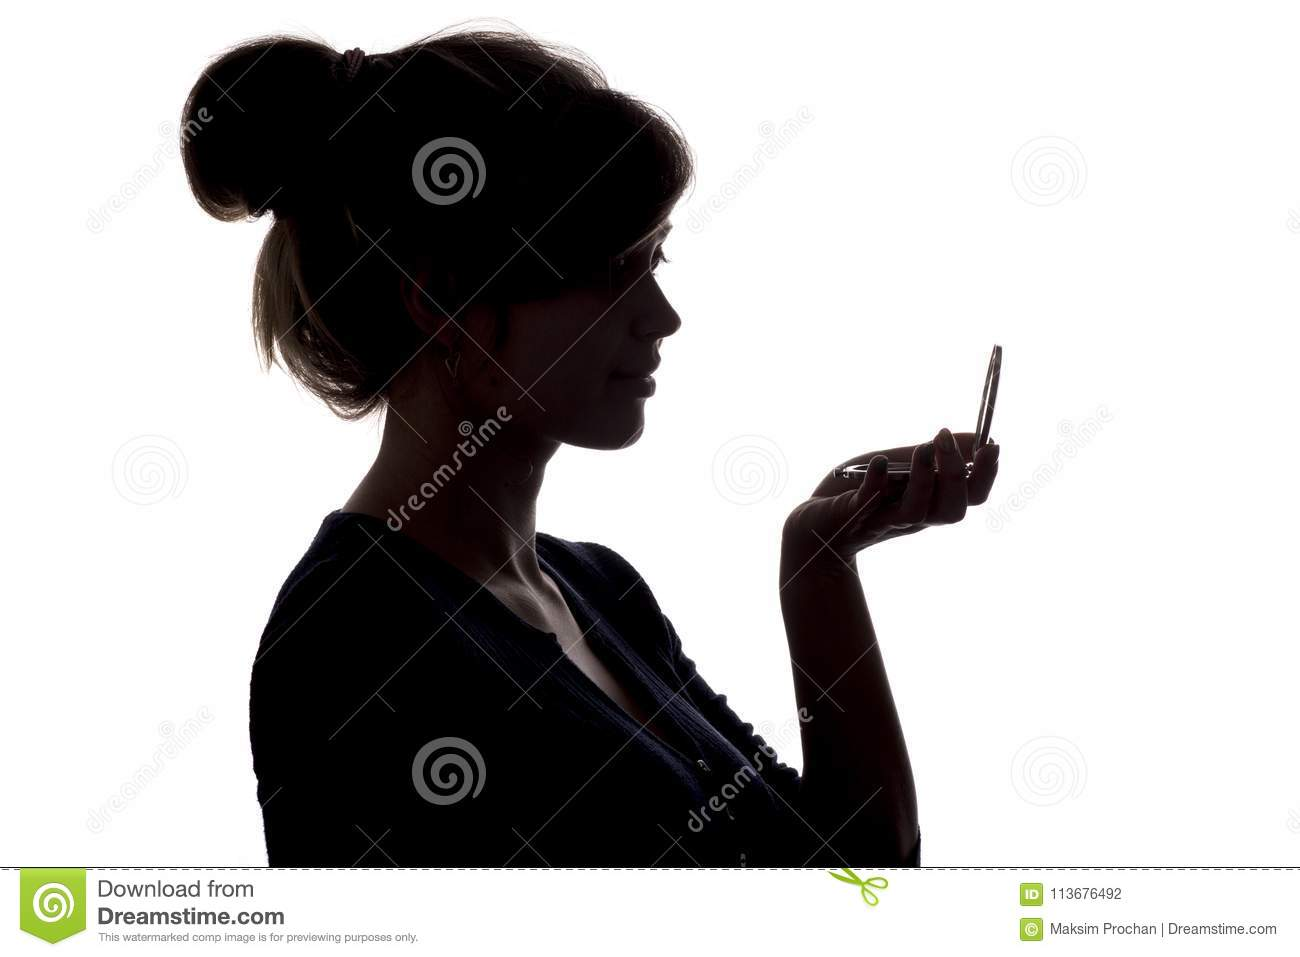 Silhouette of a girl with handpicked hair, profile of a woman face looking in a pocket mirror, the concept of the beauty and fashi